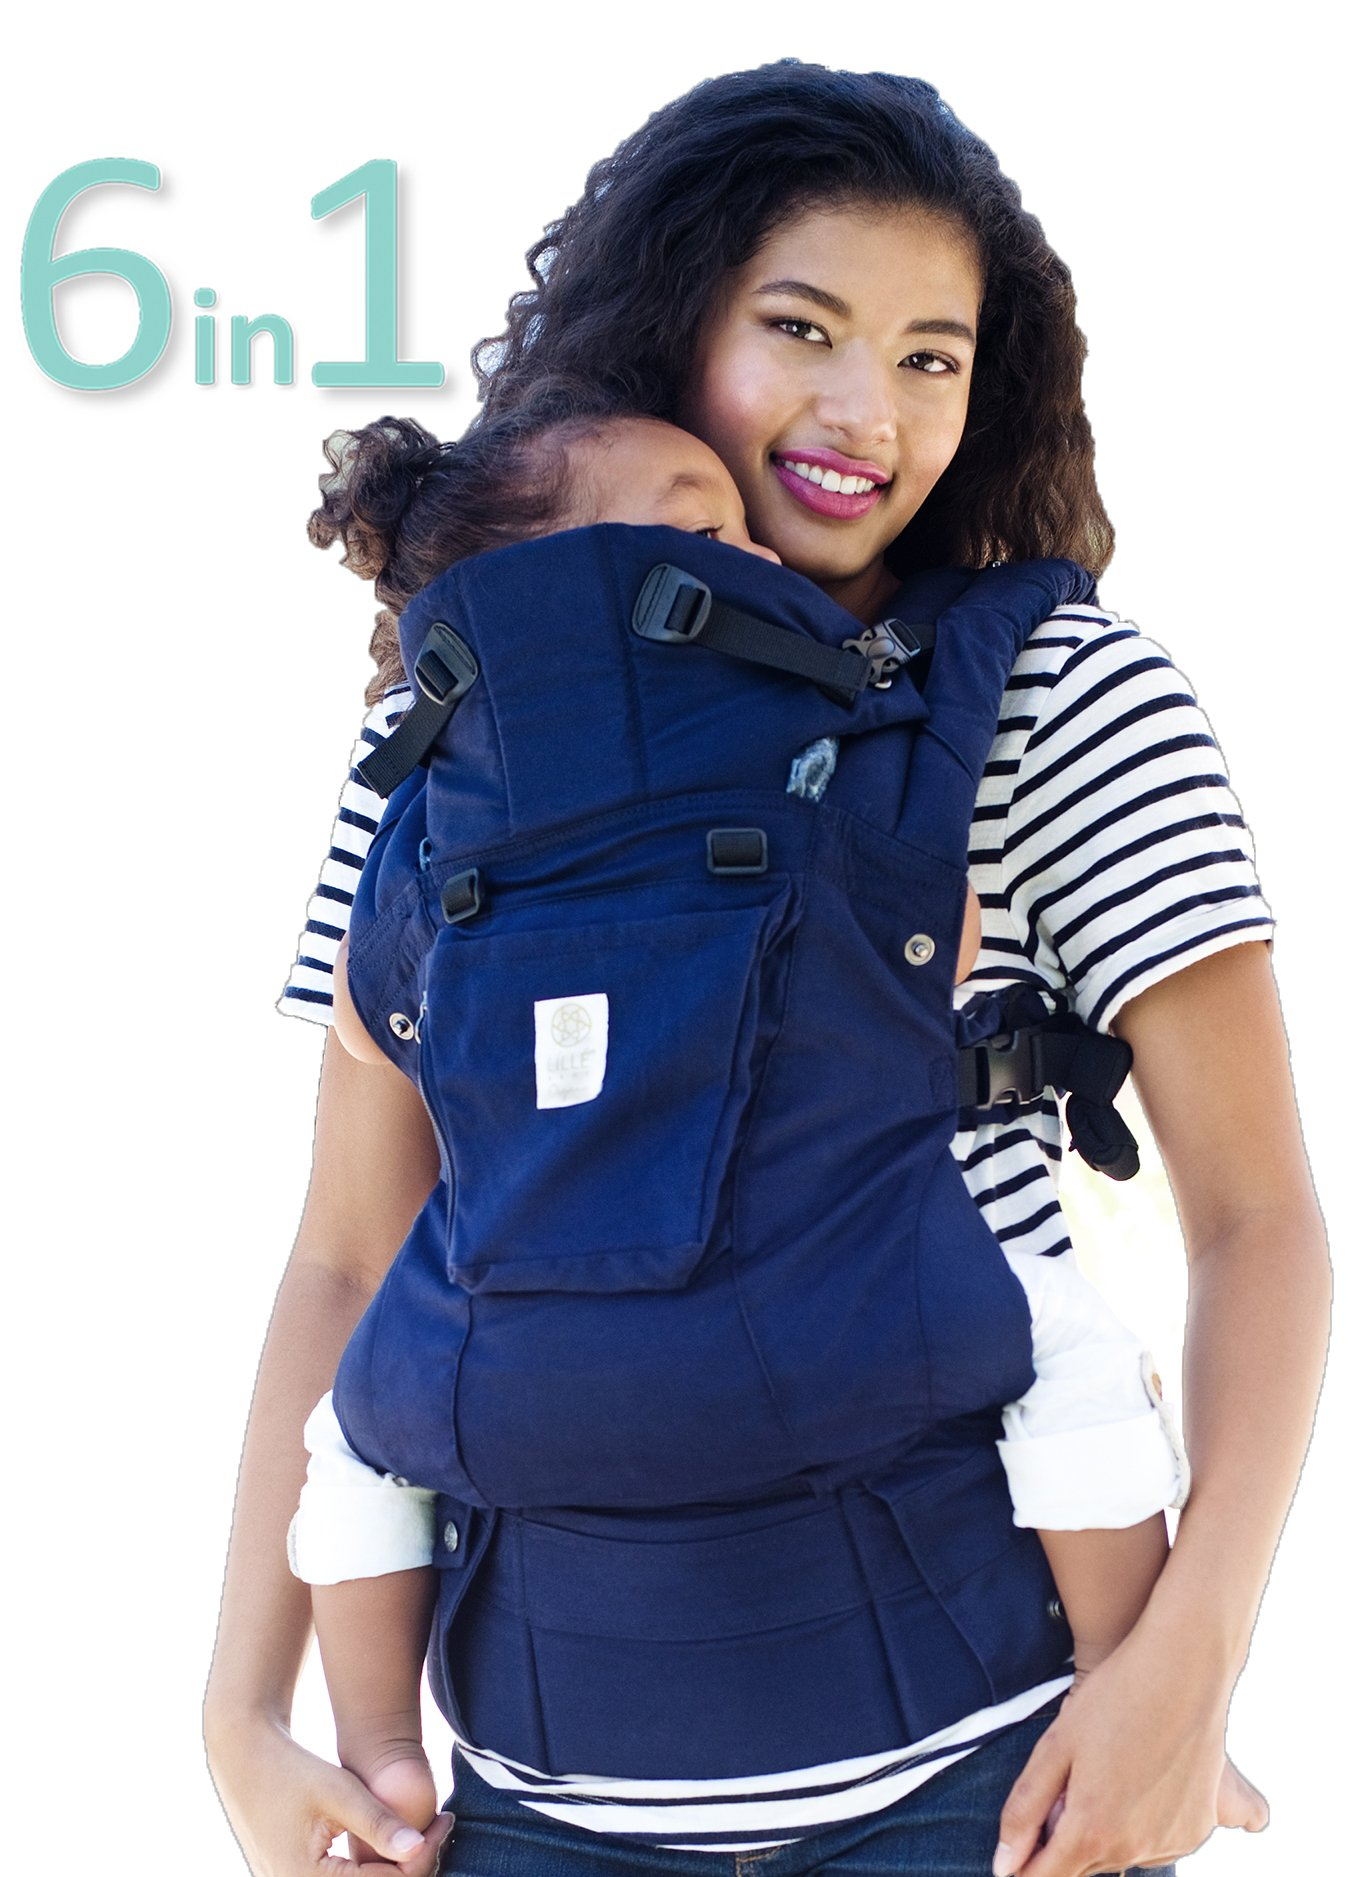 SIX-Position, 360° Ergonomic Baby & Child Carrier by LILLEbaby - The Complete Organic (Blue Moonlight) Lillebaby ERGONOMIC: Perfect for newborns. No insert needed. COMFORT: Voted most comfortable baby carrier. SIX (6) POSITIONS: Front inward (fetal, infant, or toddler settings), front outward, hip or back carry. 7 - 45 lbs. 1